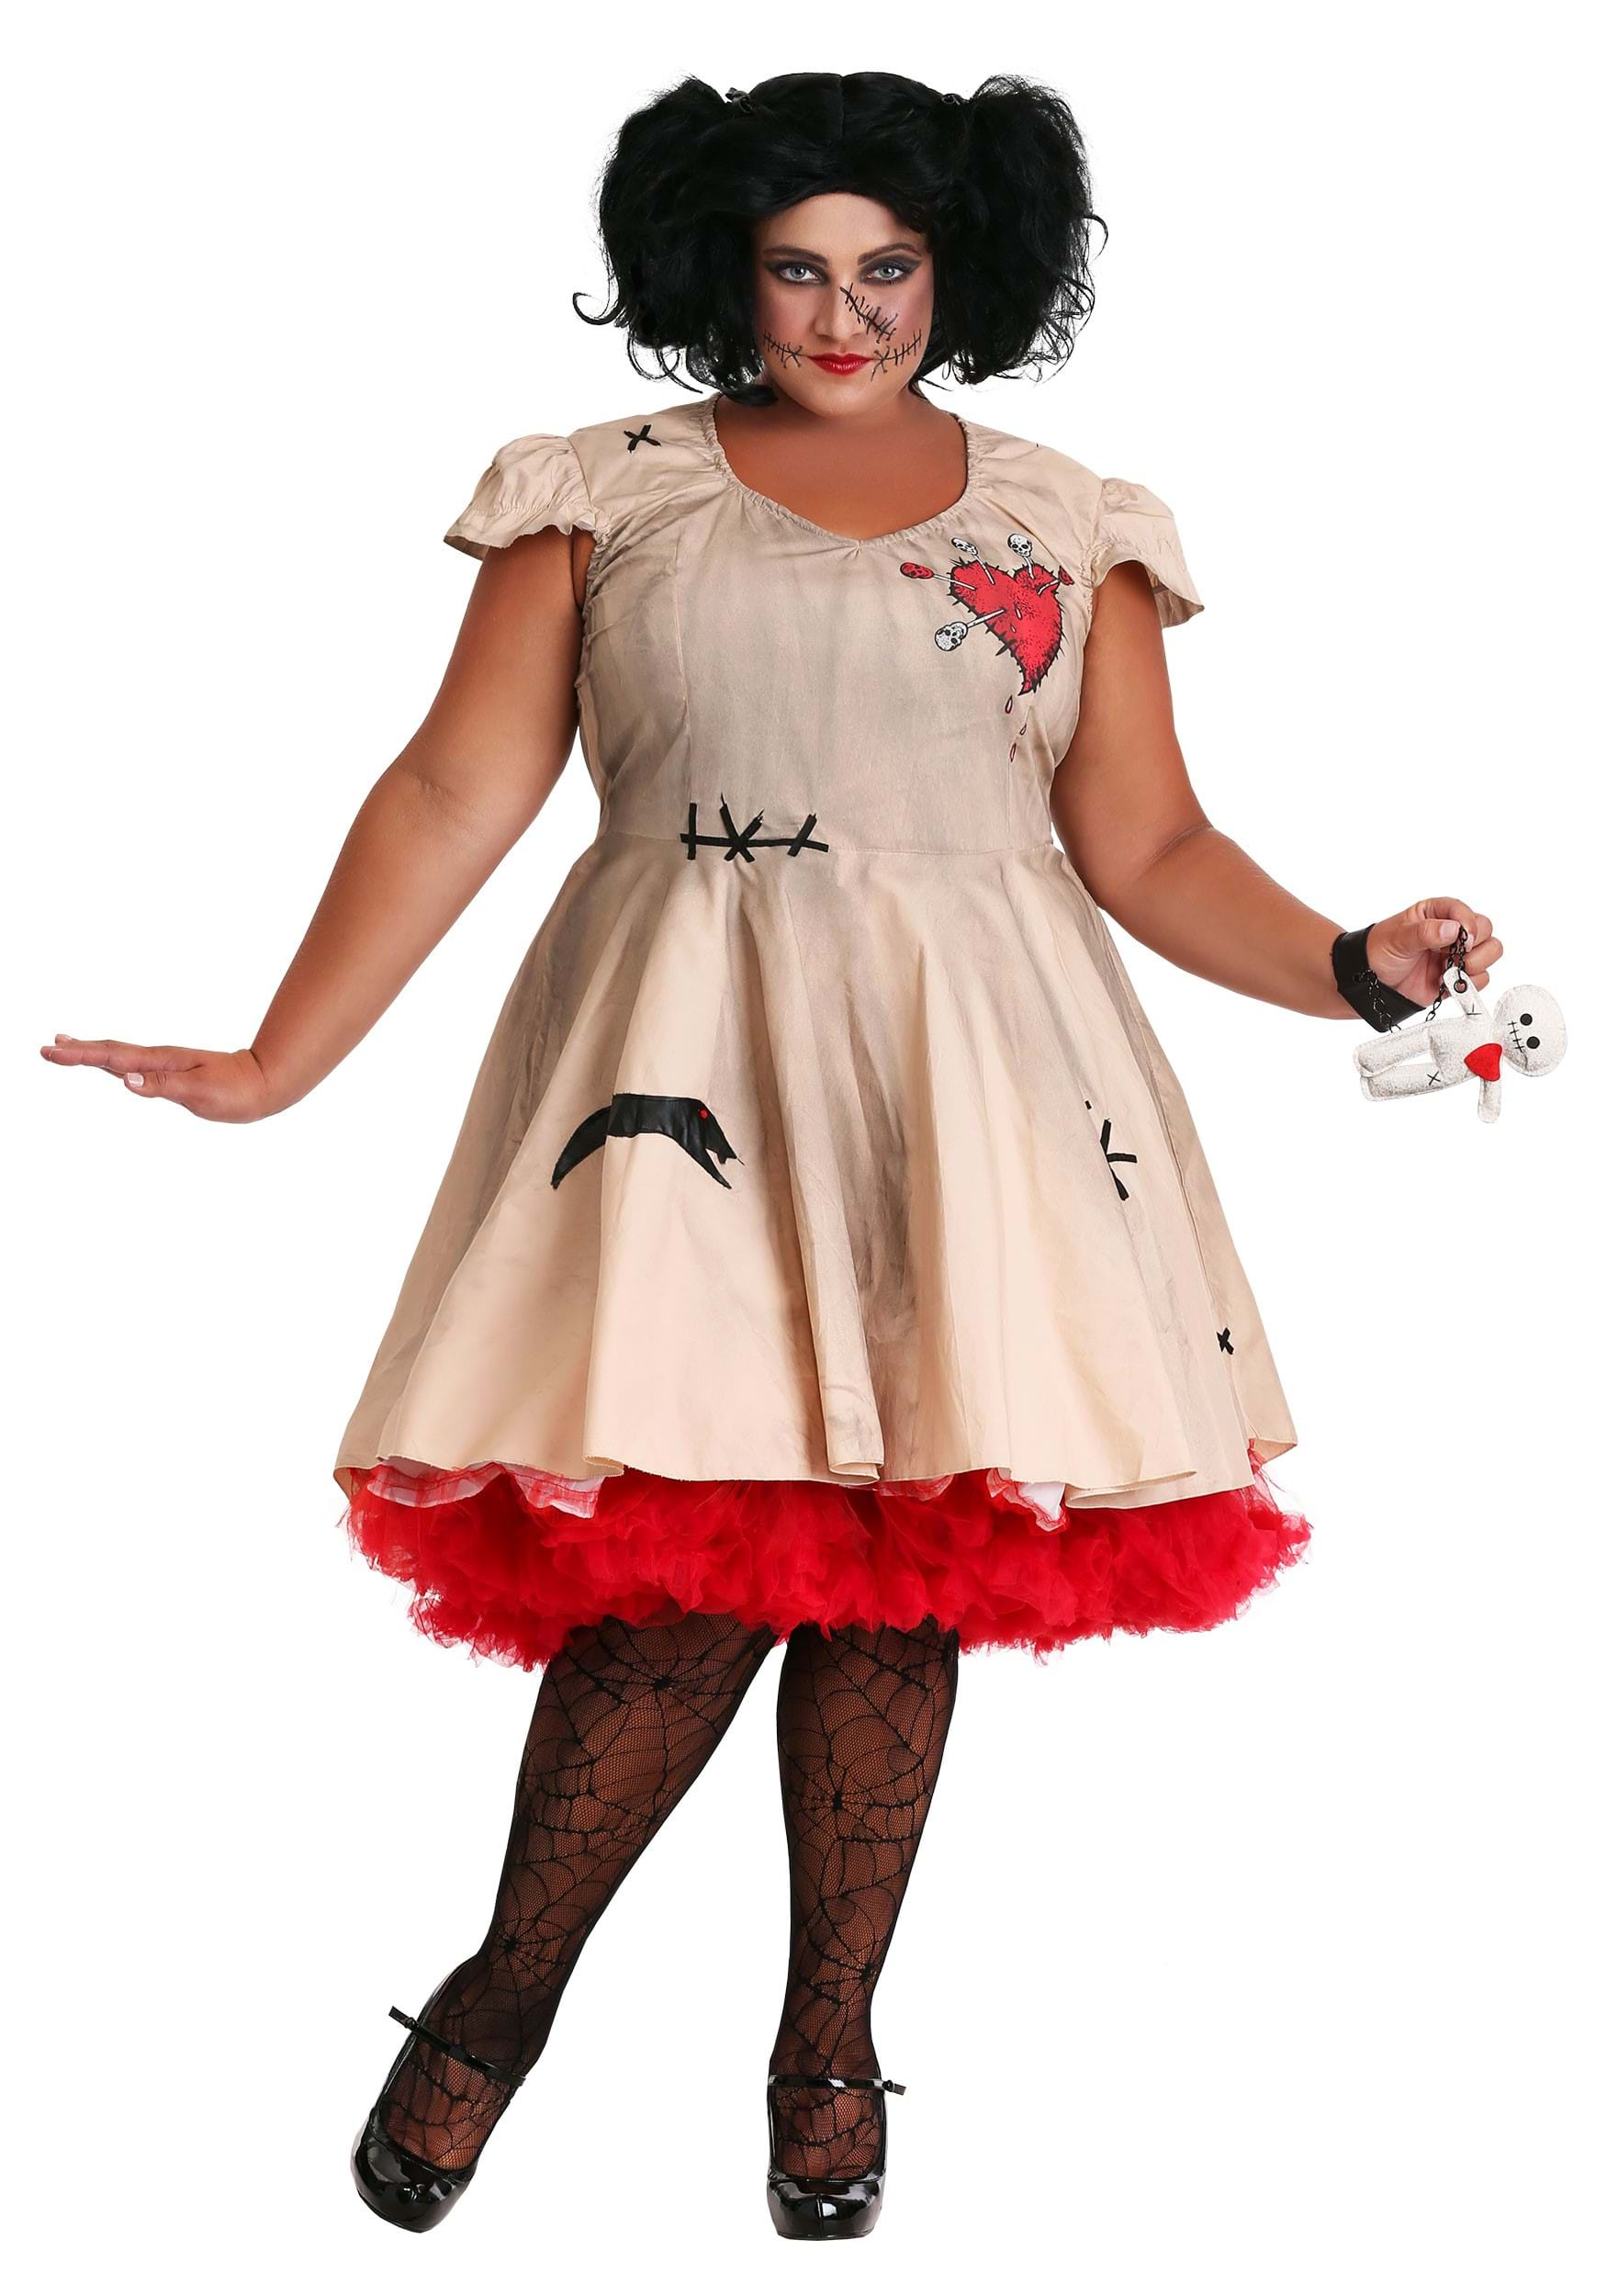 womens plus size voodoo doll costume - Cheapest Place To Buy Halloween Costumes